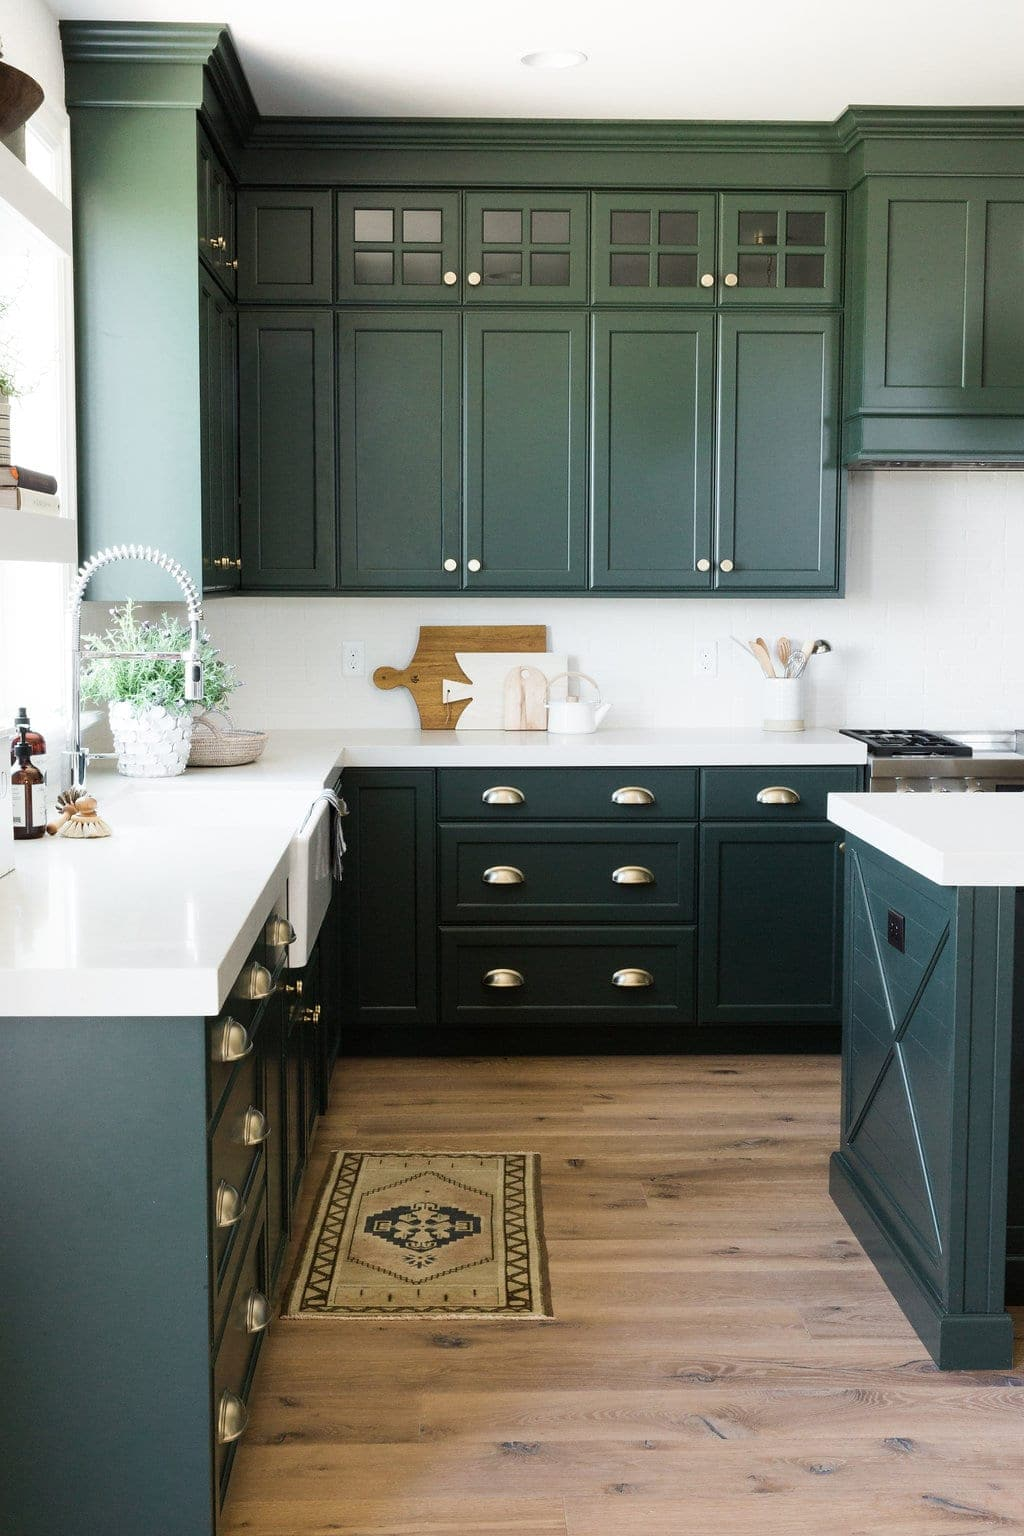 Superb A Round Up Of The Best Green Kitchen Cabinet Paint Colors For The Hottest  Bold